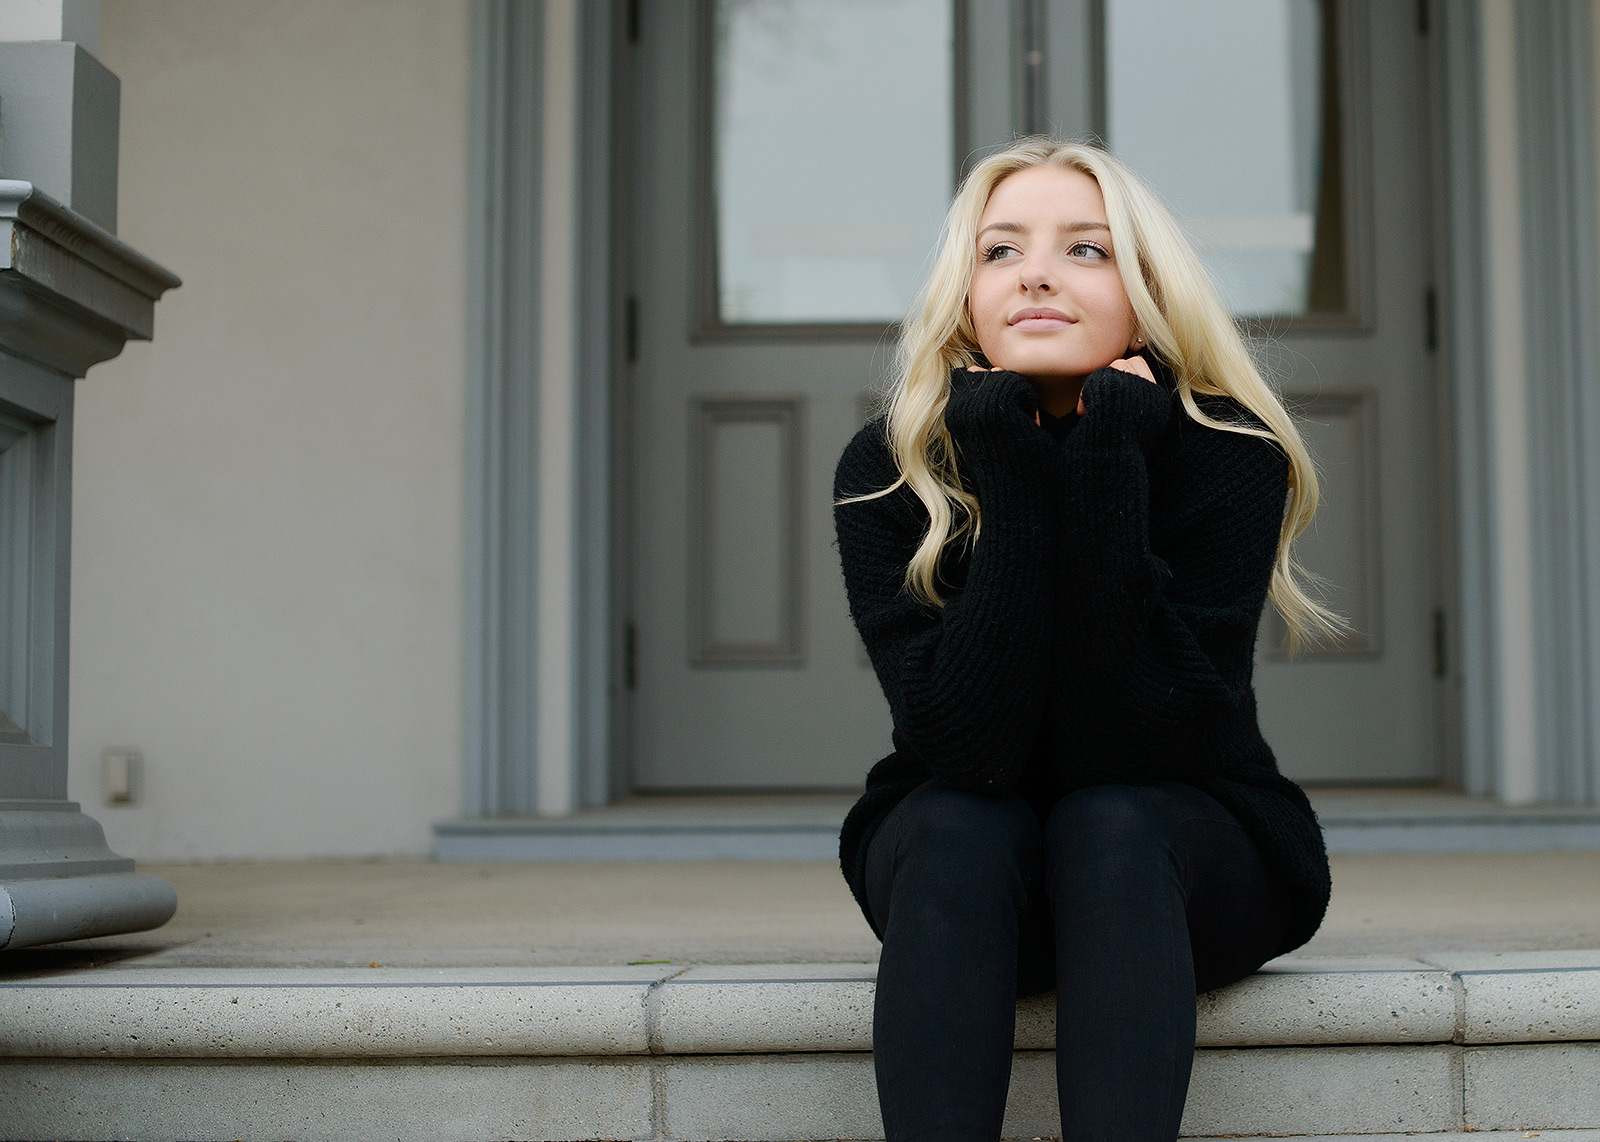 Senior portrait of teen girl wearing black turtleneck on State Capitol steps